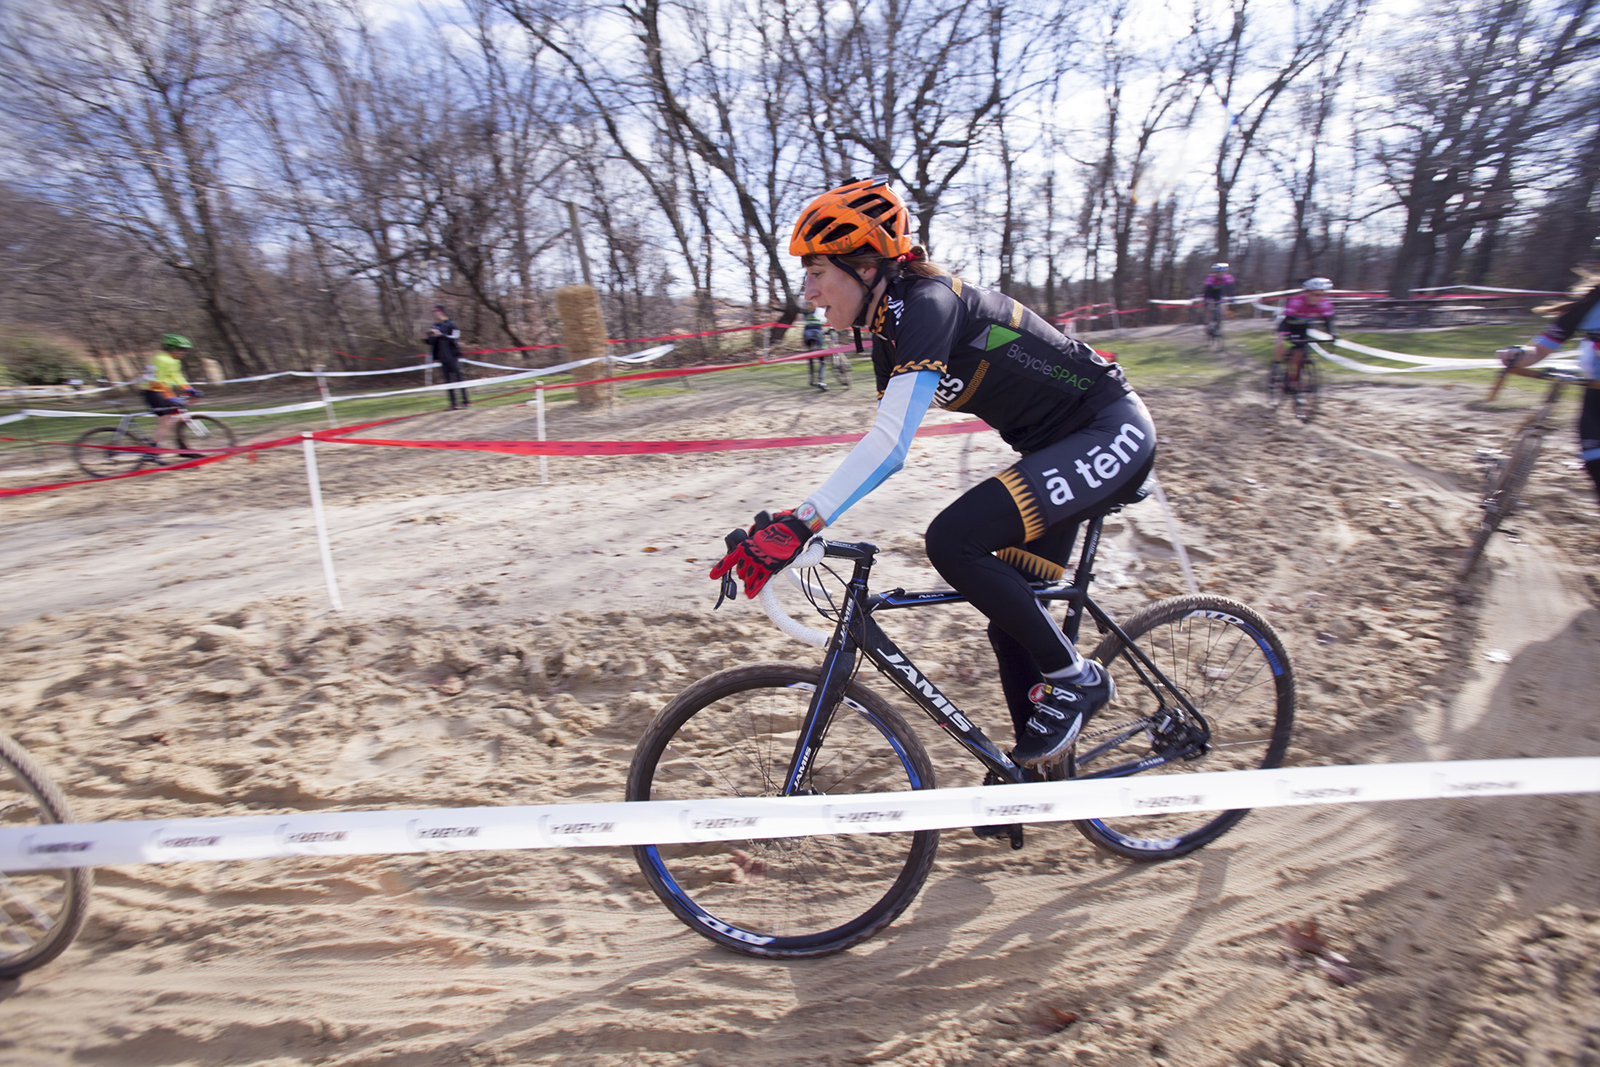 Ana tackles the sandpit in Occoquan Park at Bikeneticx.